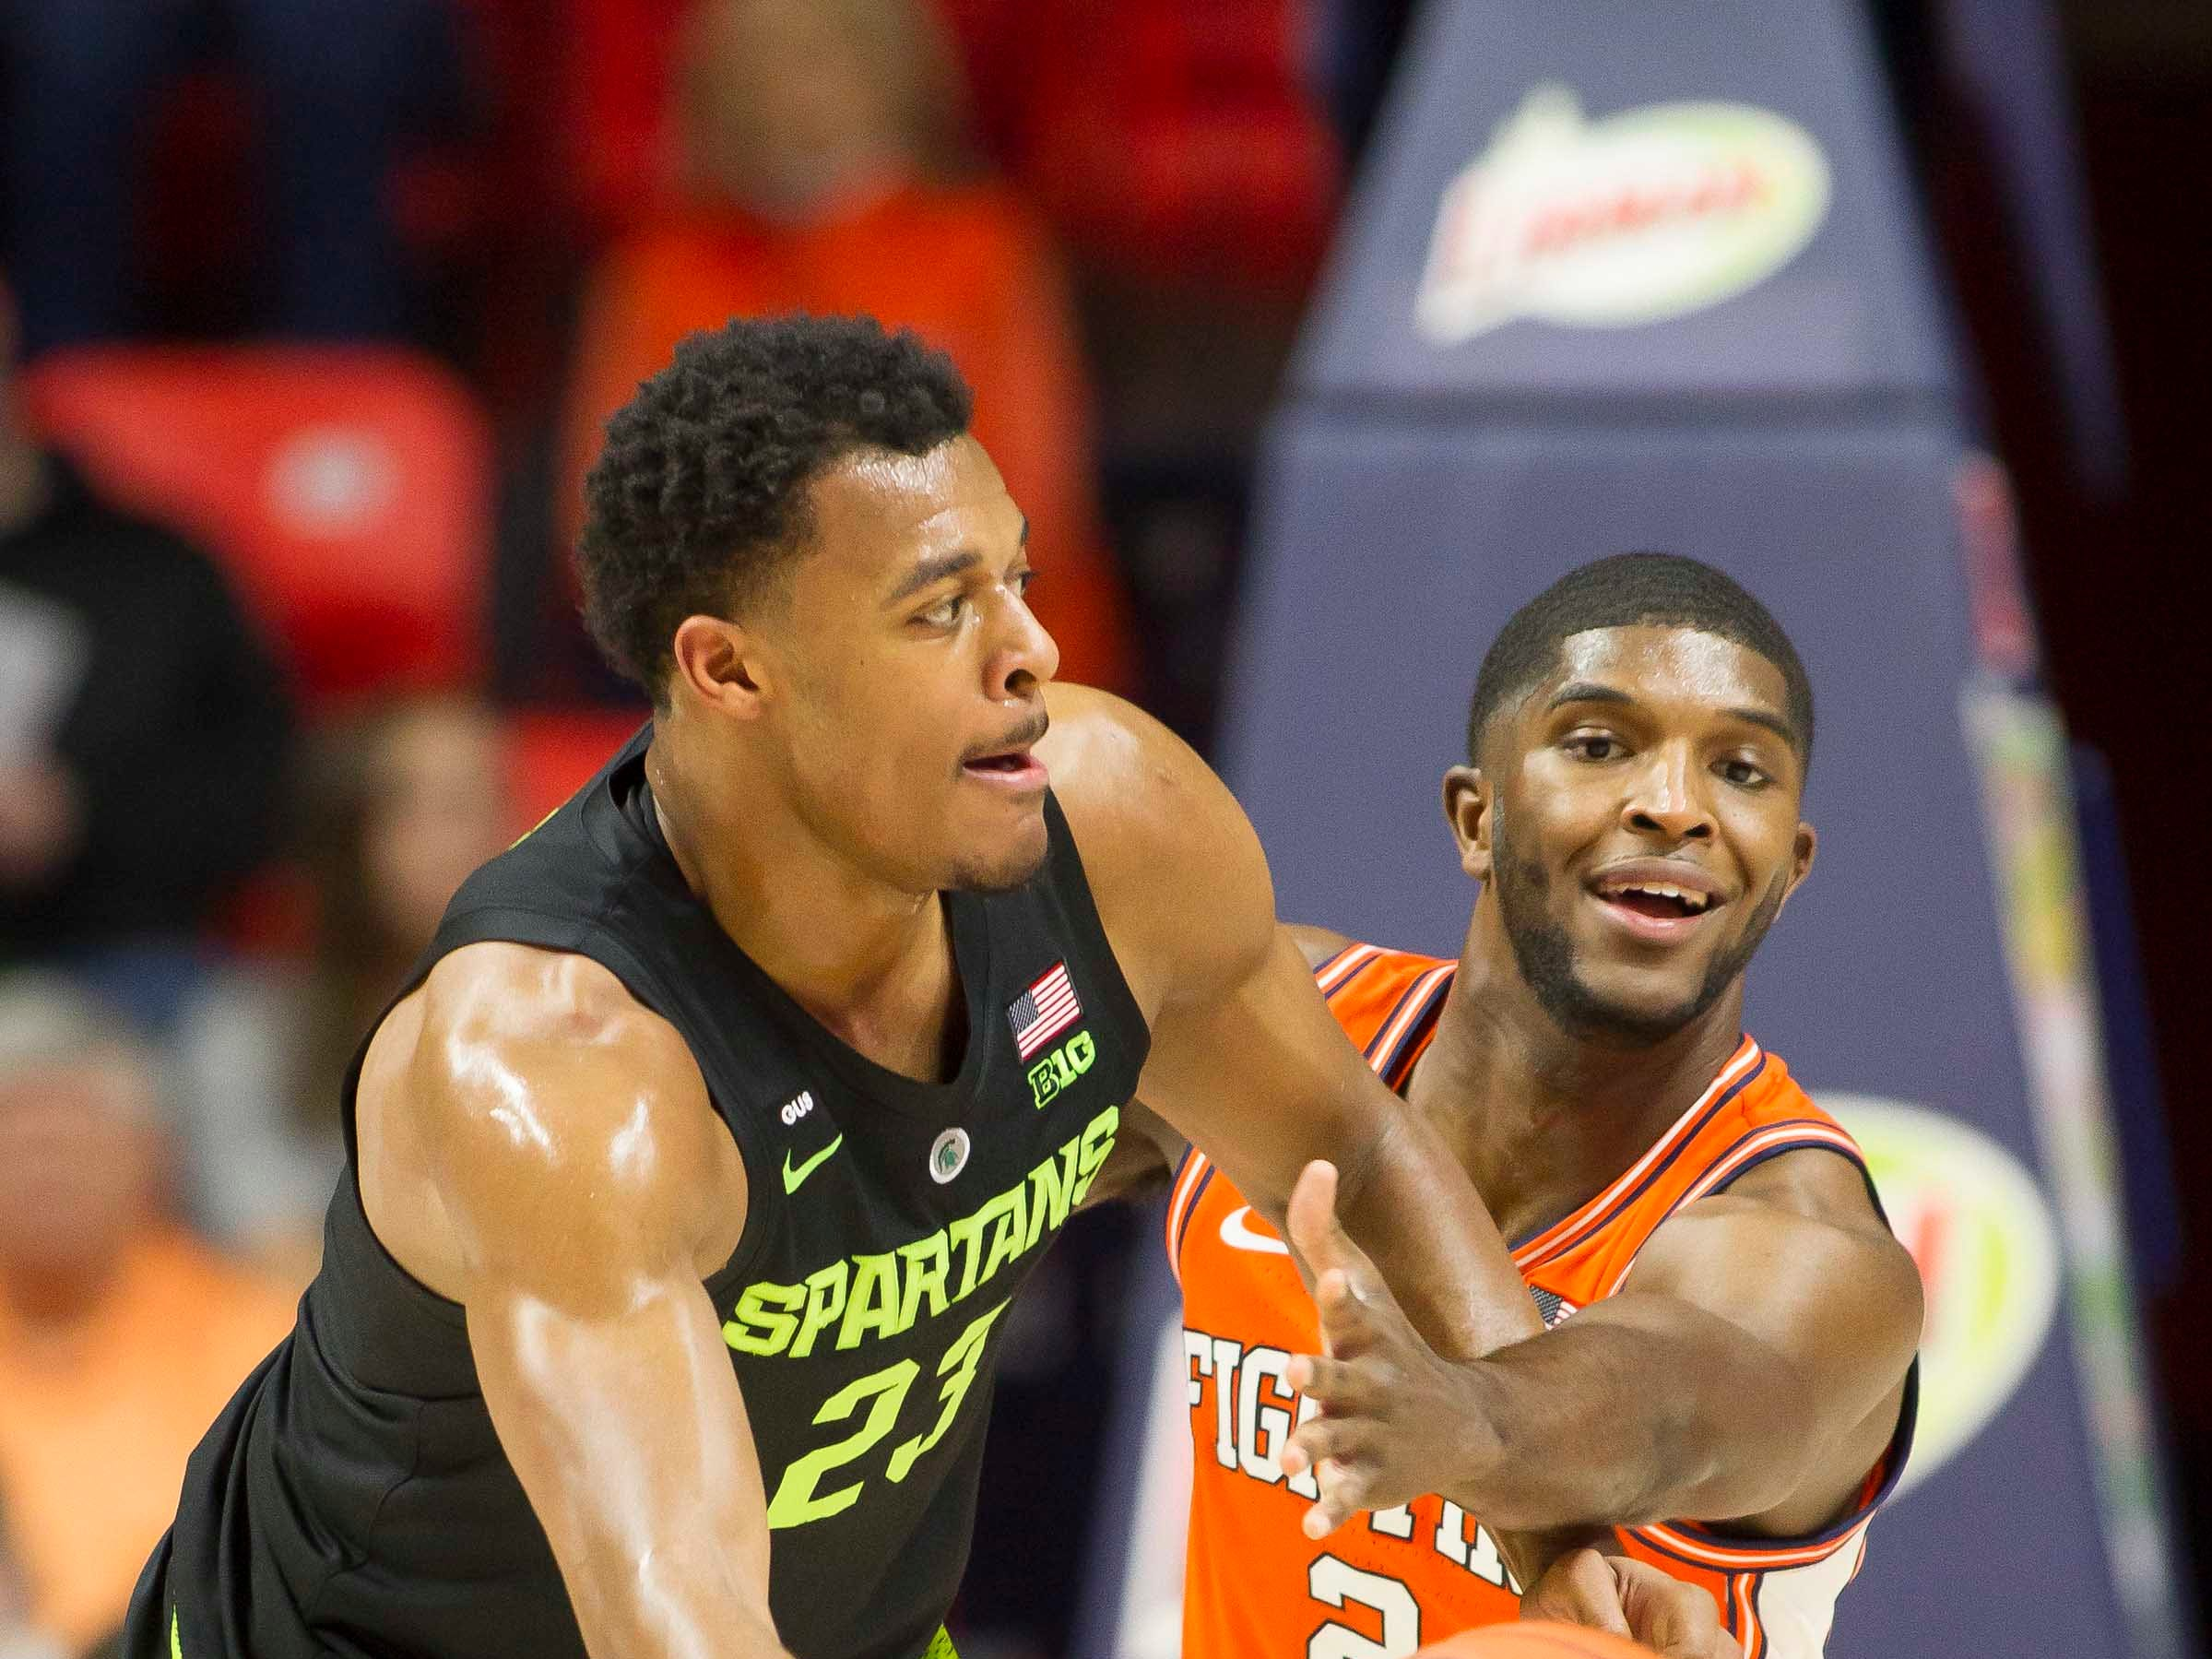 Feb 5, 2019; Champaign, IL, USA; Illinois Fighting Illini forward Kipper Nichols (2) defends Michigan State Spartans forward Xavier Tillman (23) during the first half at State Farm Center. Mandatory Credit: Mike Granse-USA TODAY Sports